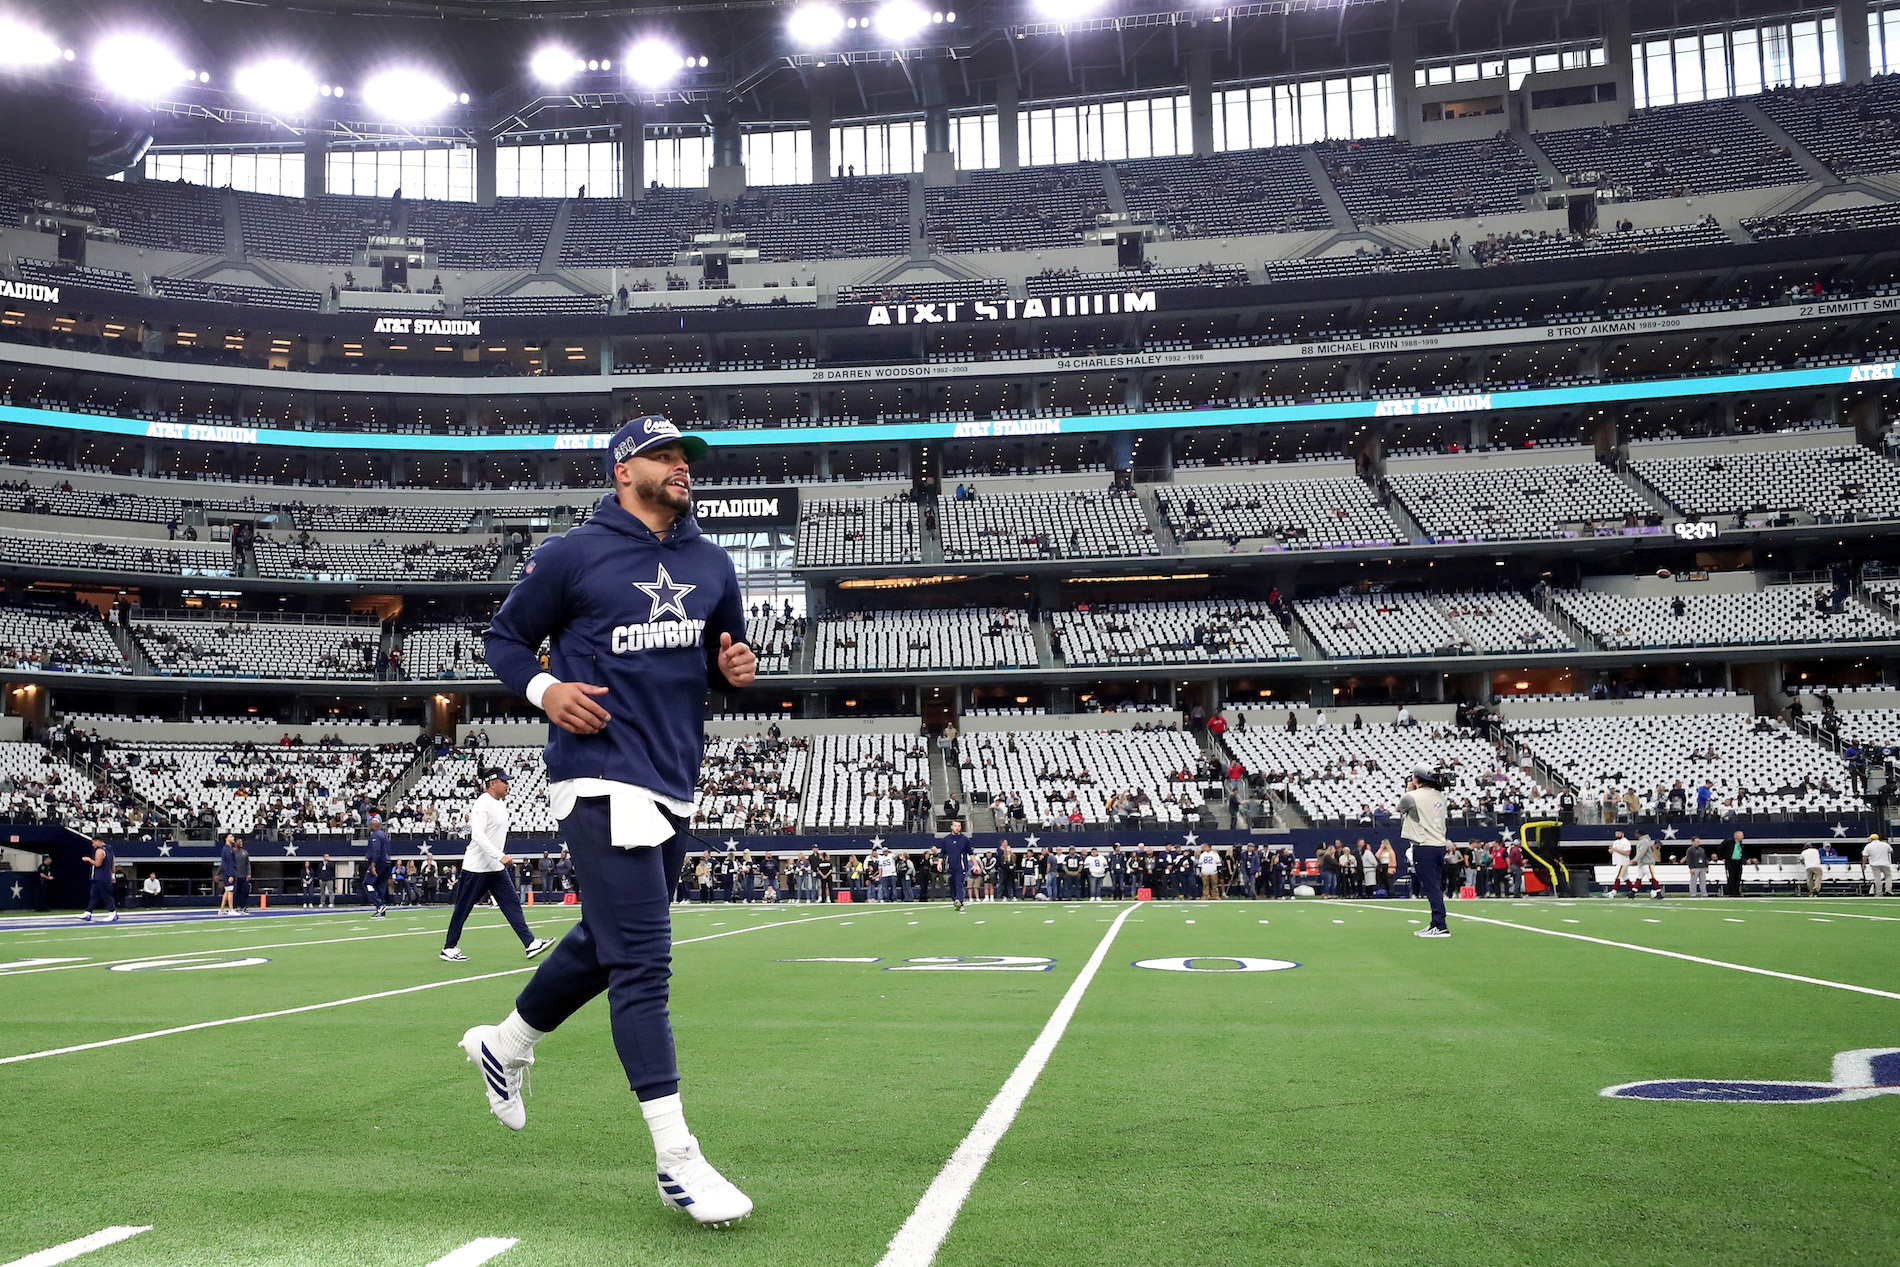 Dak Prescott and the Dallas Cowboys have until Wednesday to decide on a long-term contract, but the QB would be foolish to sign right now.